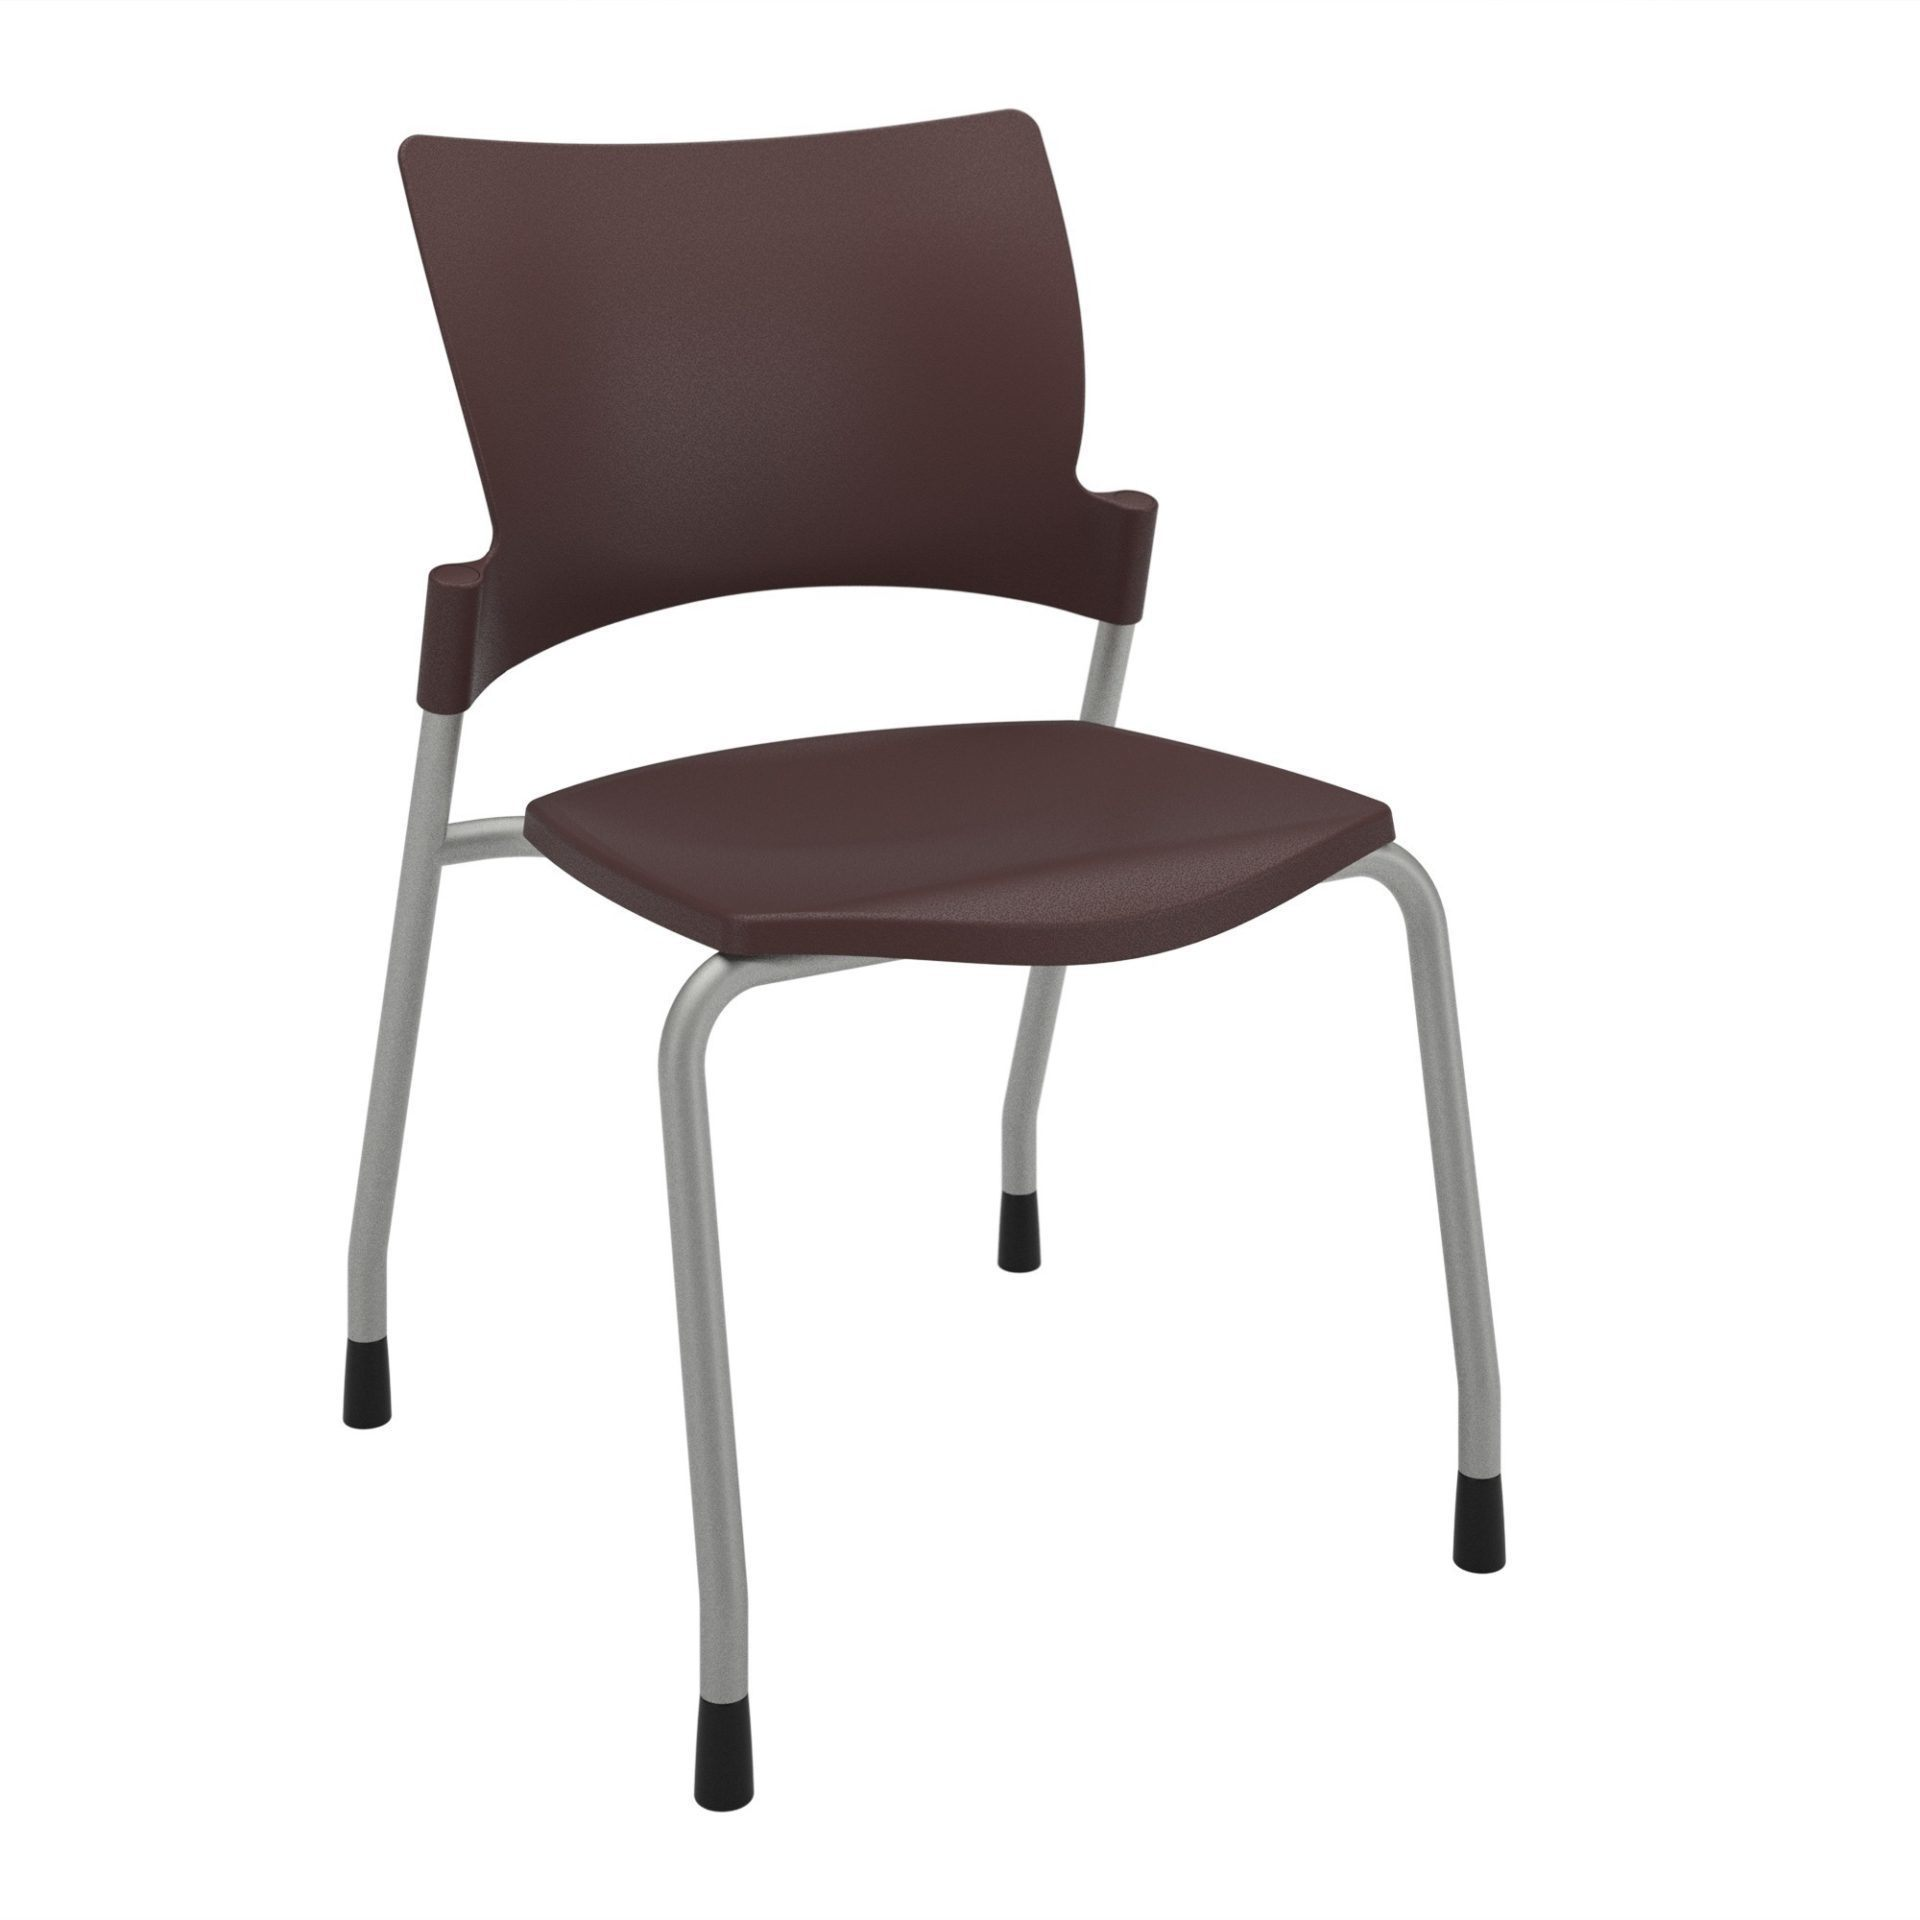 SitOnIt Relay Nester Chair